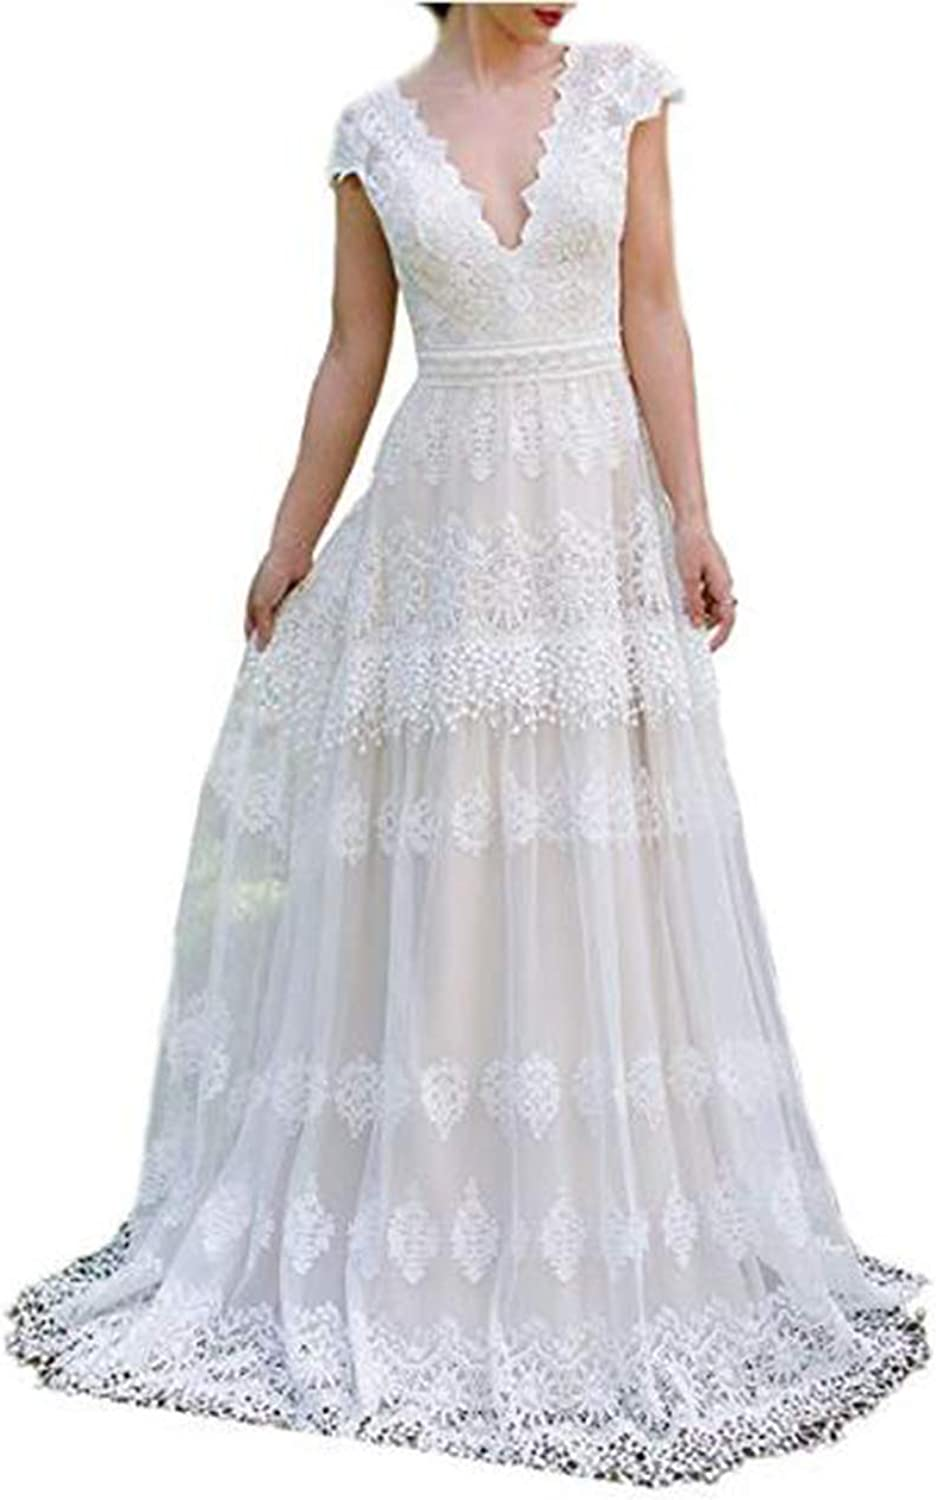 Alilith.Z Sexy V Neck Boho Wedding Dresses for Bride 2018 Appliques Lace Bohemian Bridal Gowns for Women